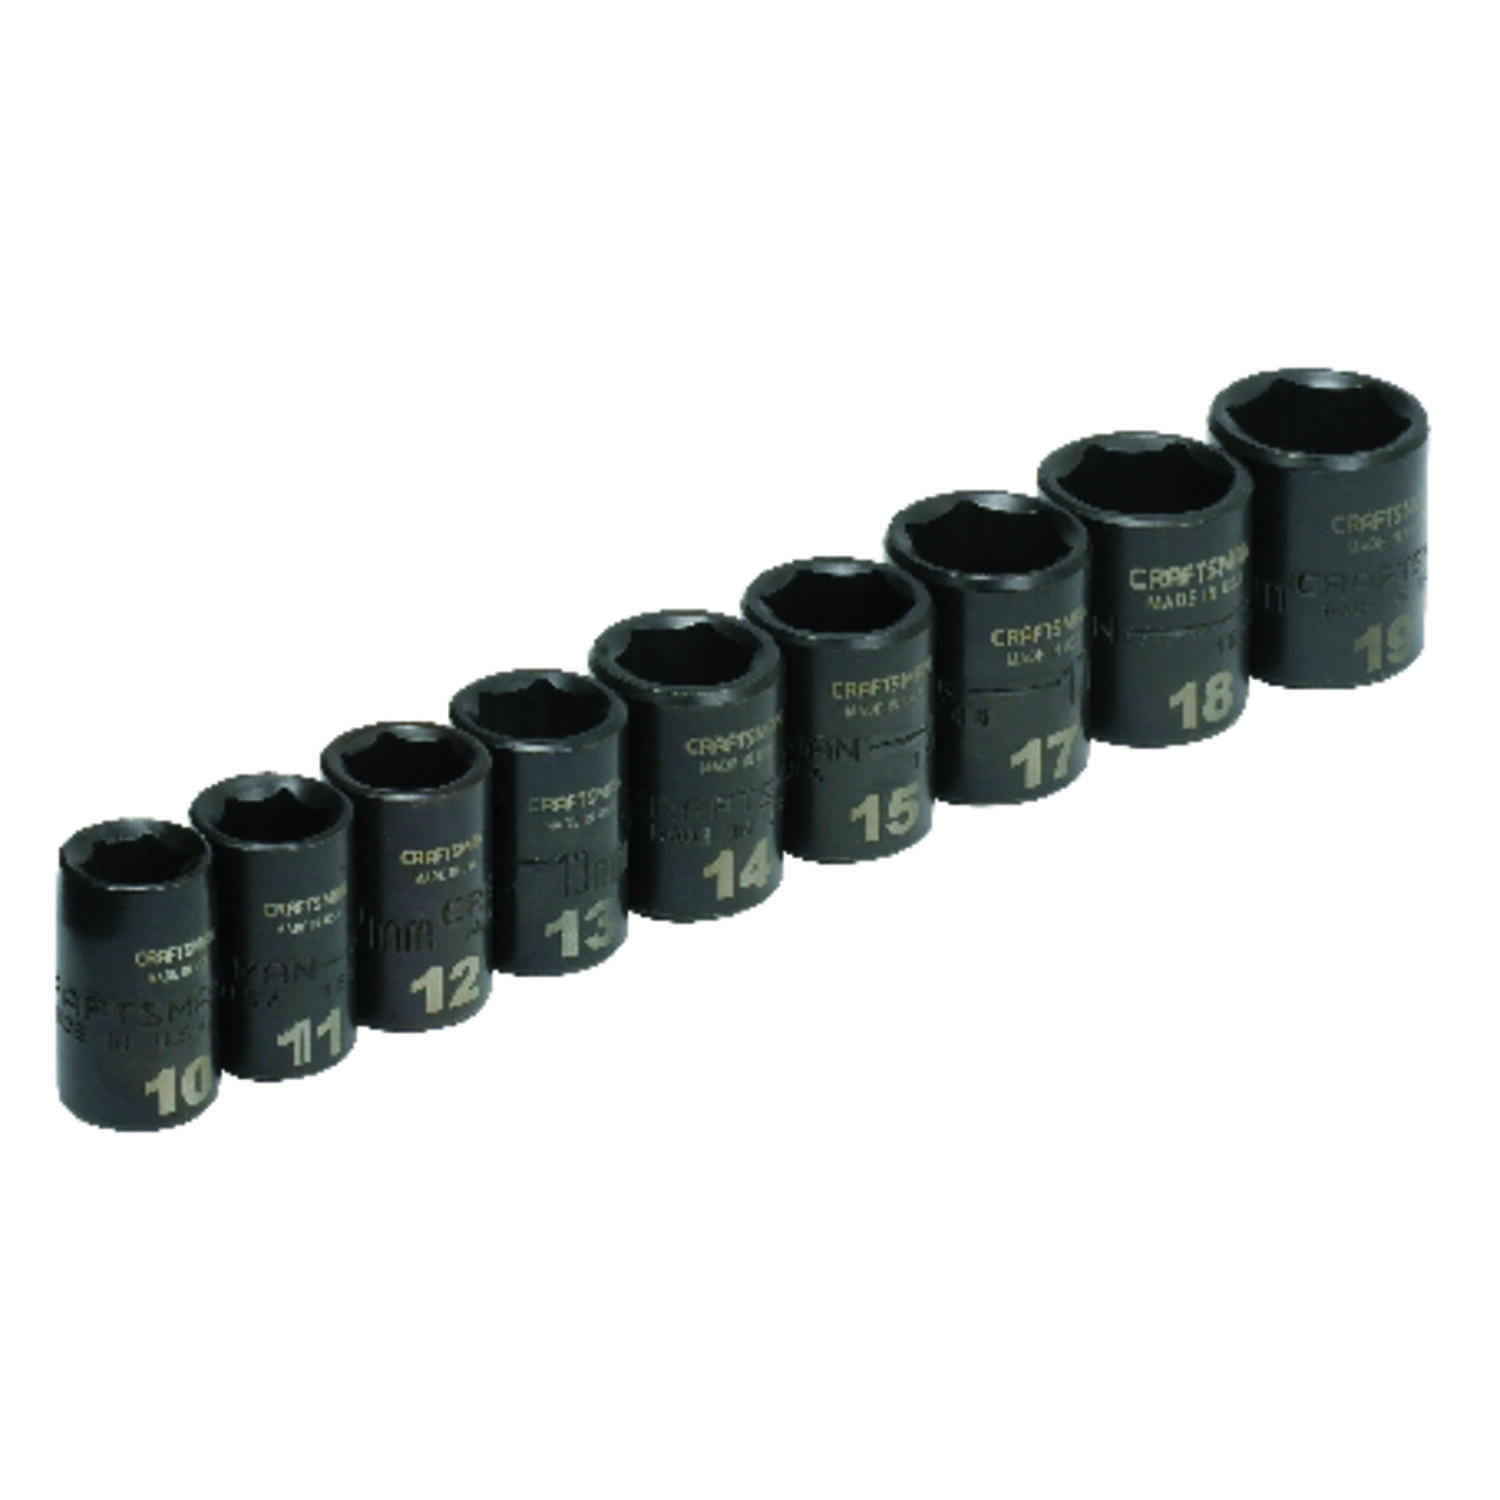 Craftsman  19 mm  x 3/8 in. drive  Metric  6 Point Impact Socket Set  9 pc.